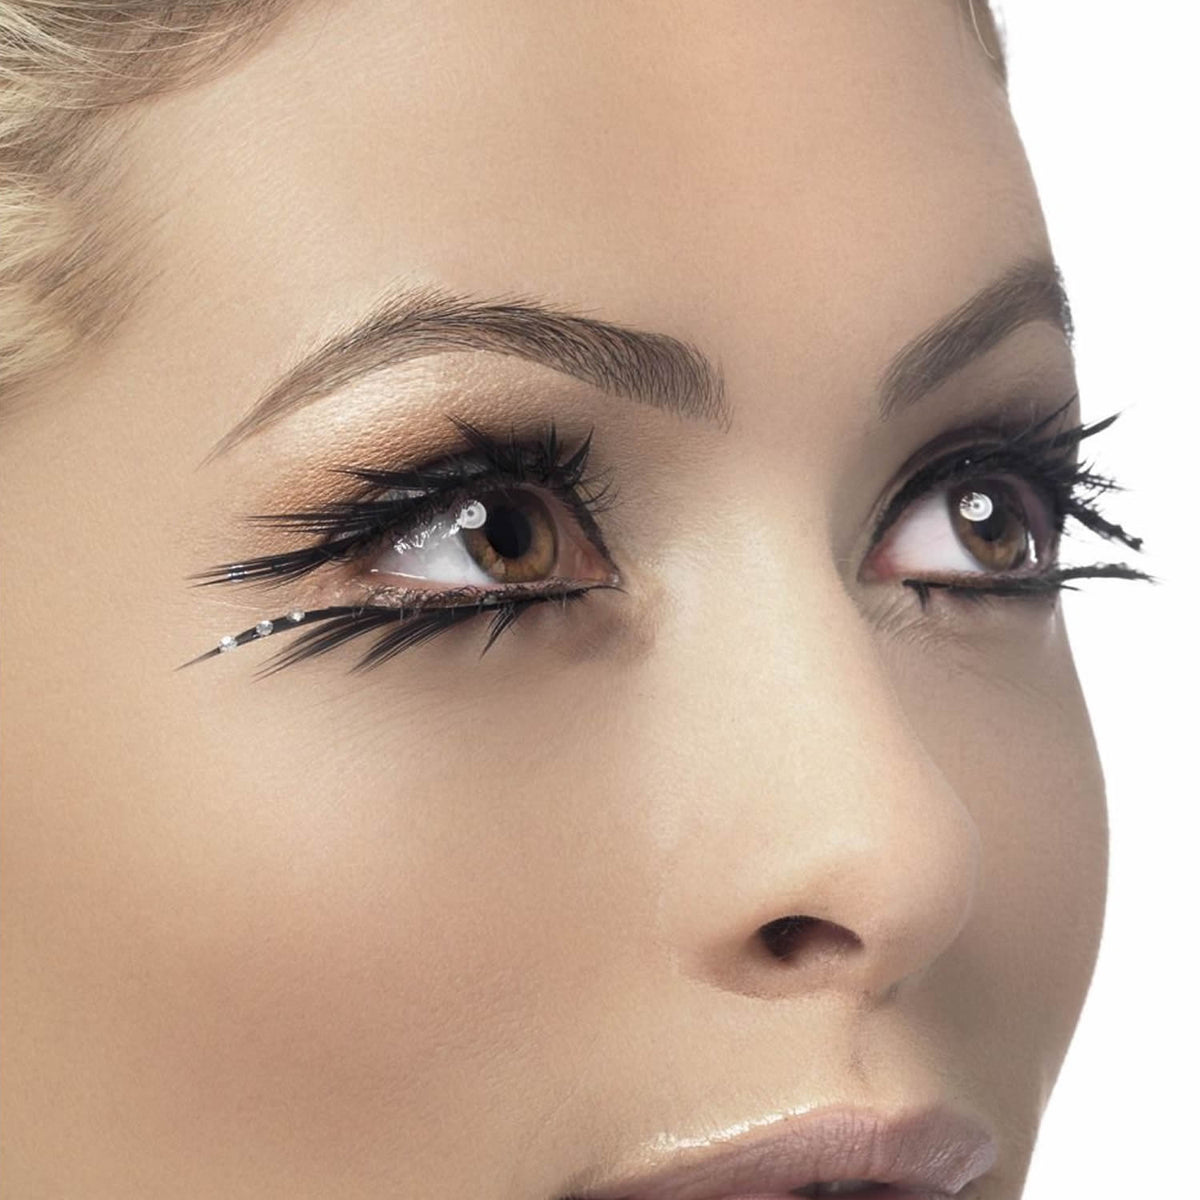 Fever False Eyelashes - Black Sparkle (Top & Bottom) - Red Carpet FX - Professional Makeup